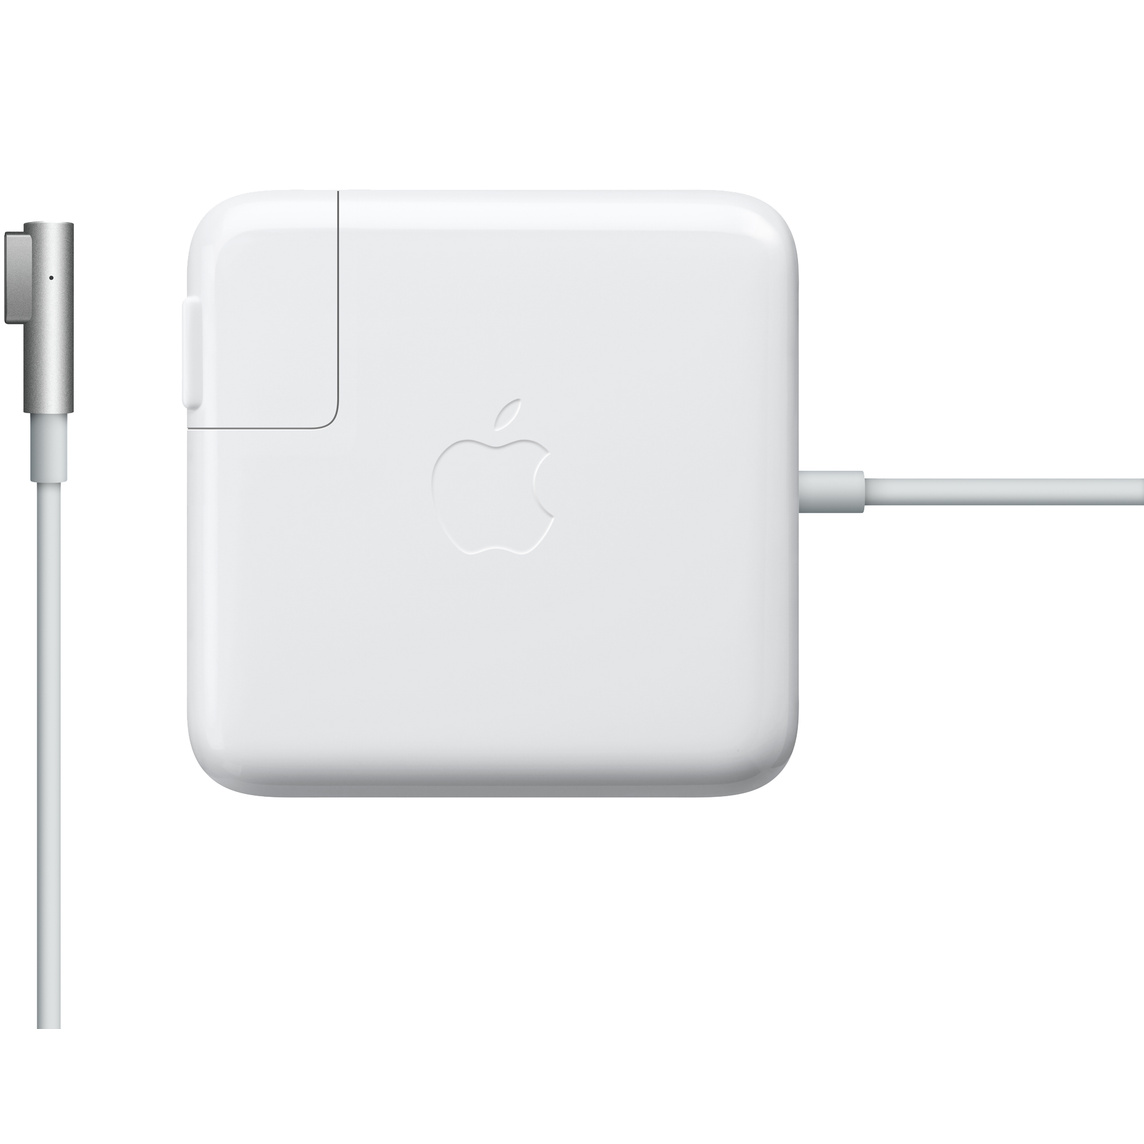 brand new 5e3c2 7e09b Apple 85W MagSafe Power Adapter (for 15- and 17-inch MacBook Pro)